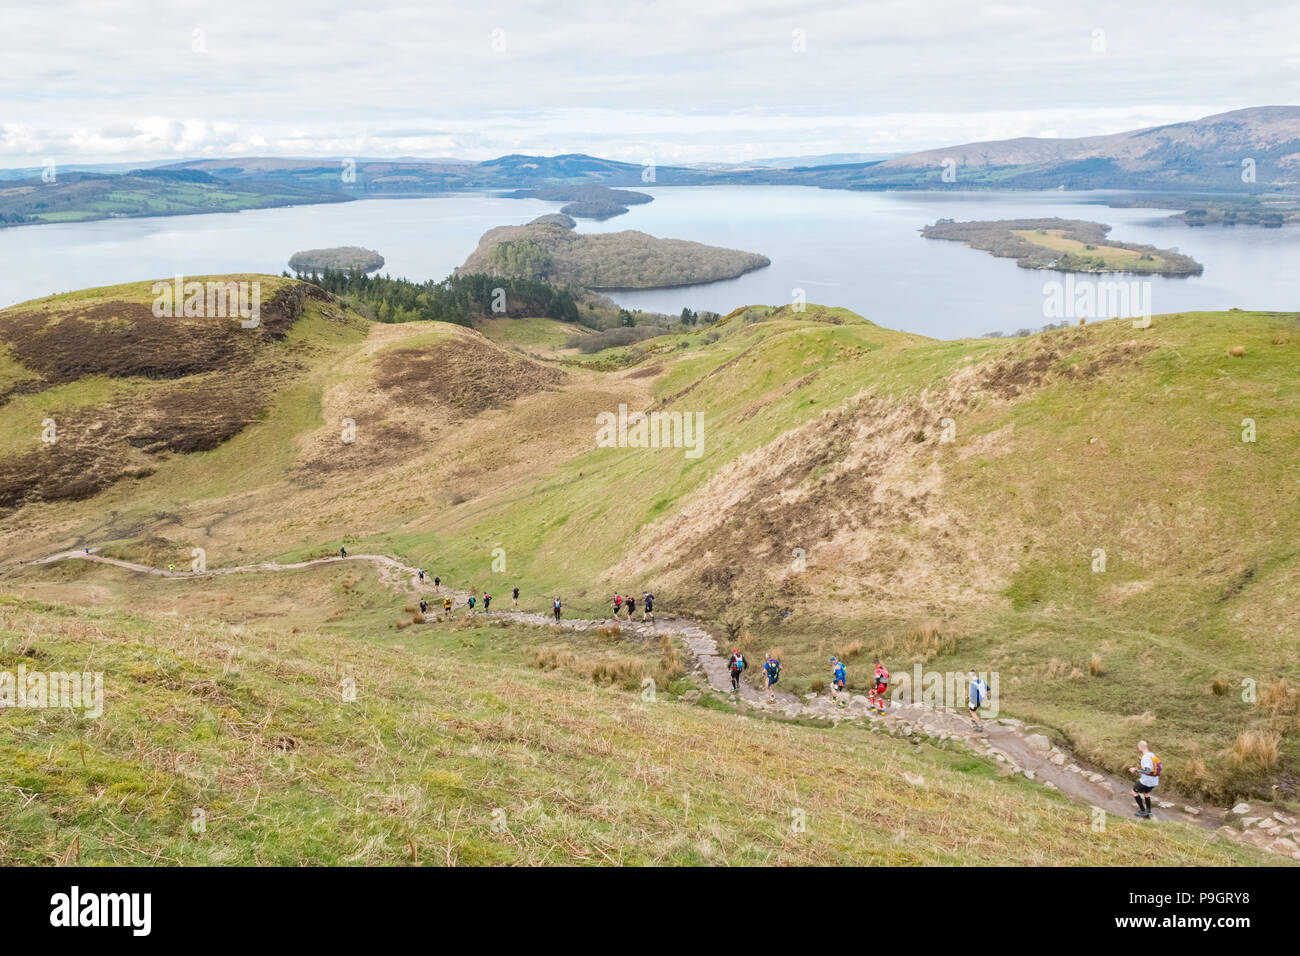 competitors descending Conic Hill  overlooking Loch Lomond, Scotland, UK during the Highland Fling ultra trail marathon - April 2018 - Stock Image